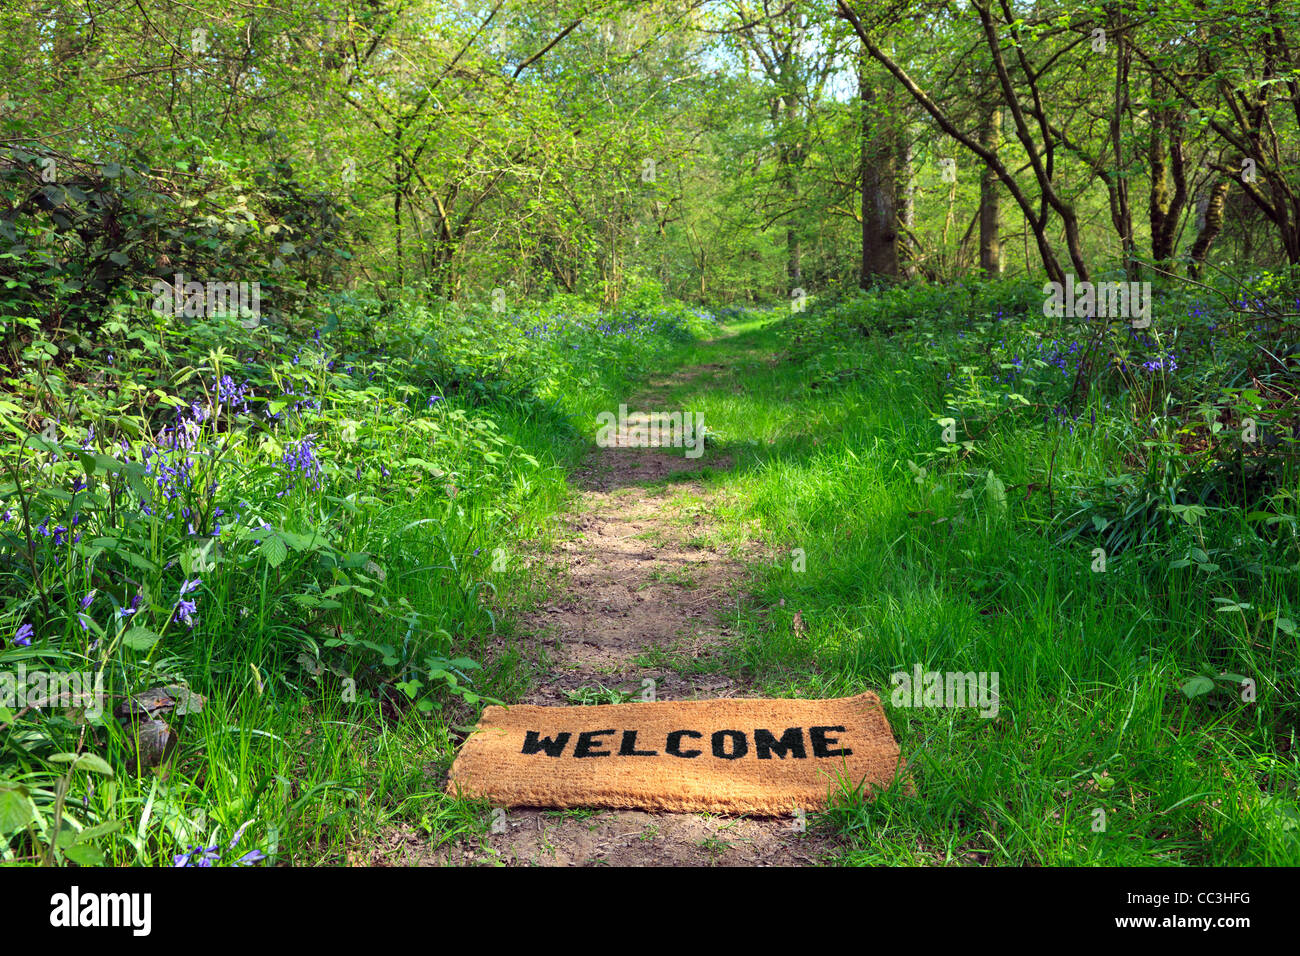 Concept photo of a Welcome doormat on a woodland footpath during springtime in horizontal format. - Stock Image